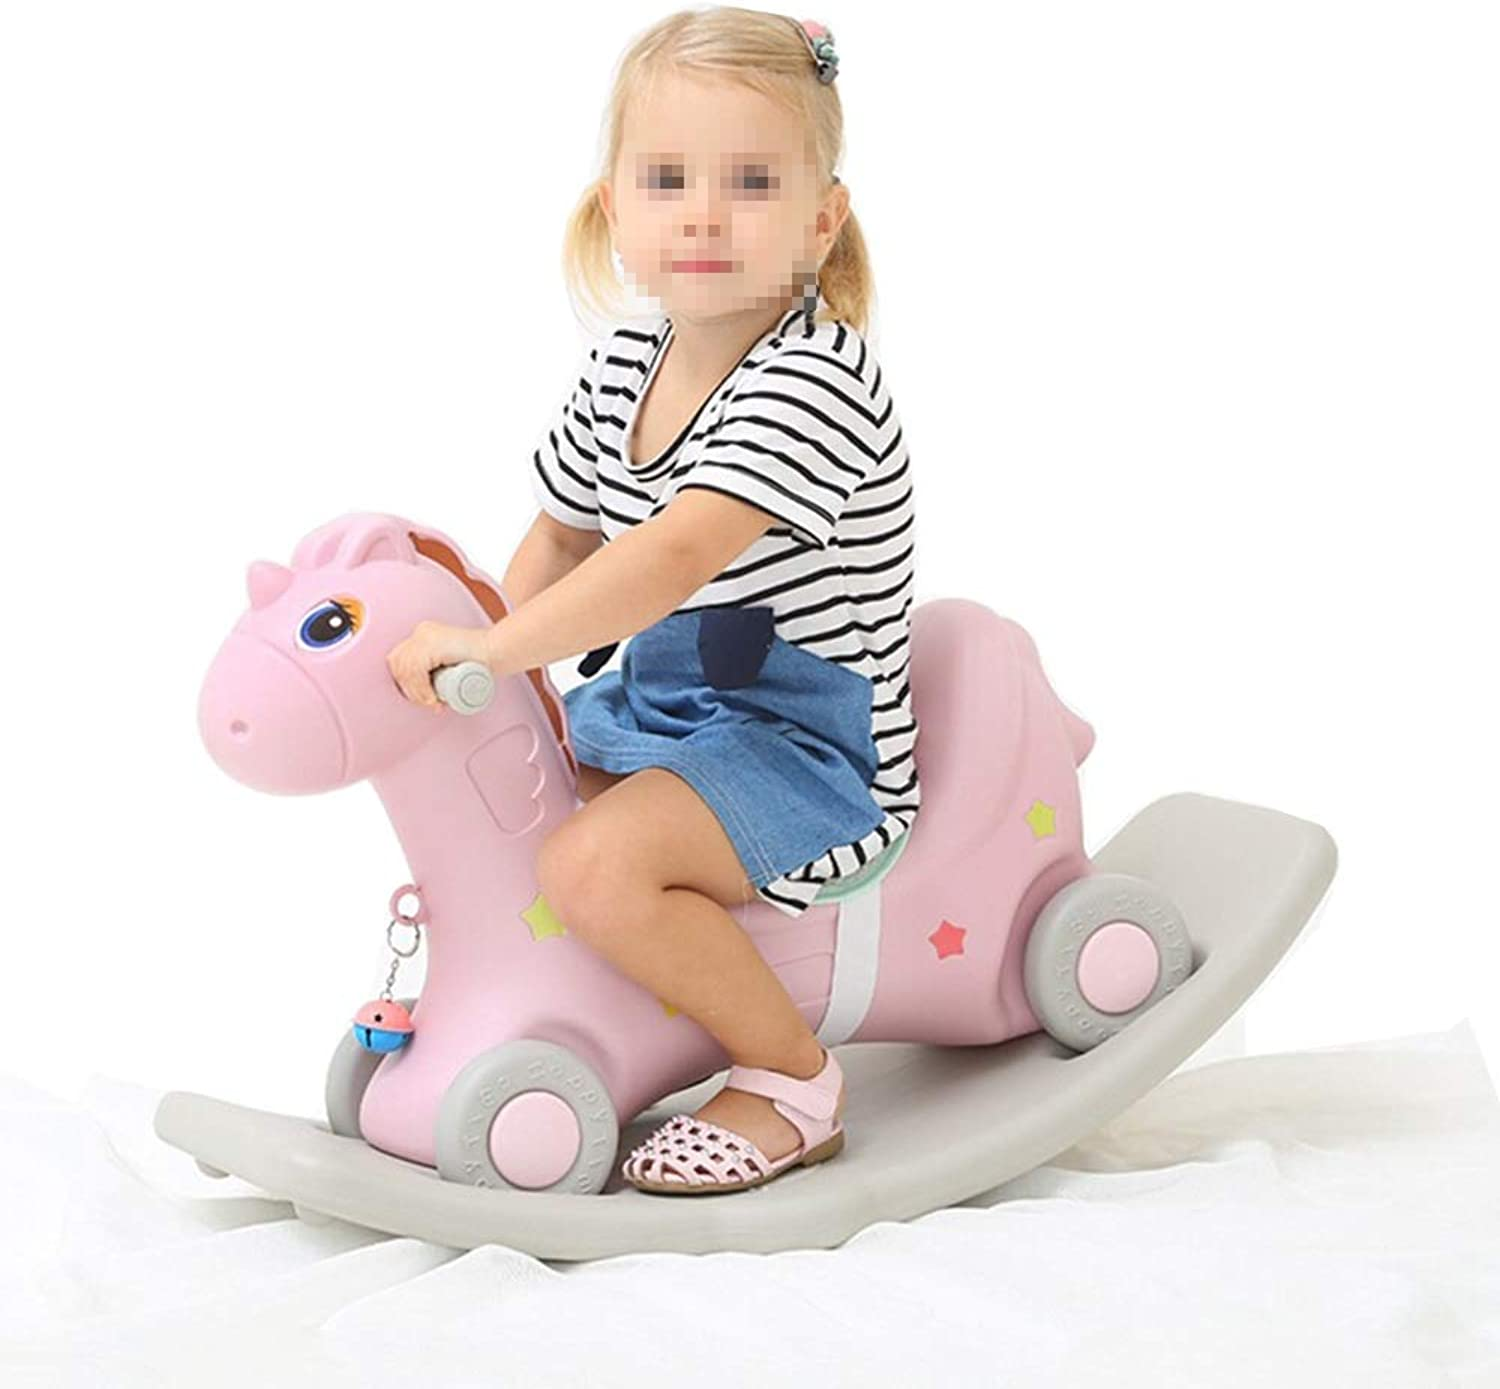 Havanadd-Toys Rocking Horse Ride On Baby Rocking Horse Set Kid Rocking Toy Kid Ride Animal Rocking Horse Toddler Toy (color   Pink, Size   80  50cm)